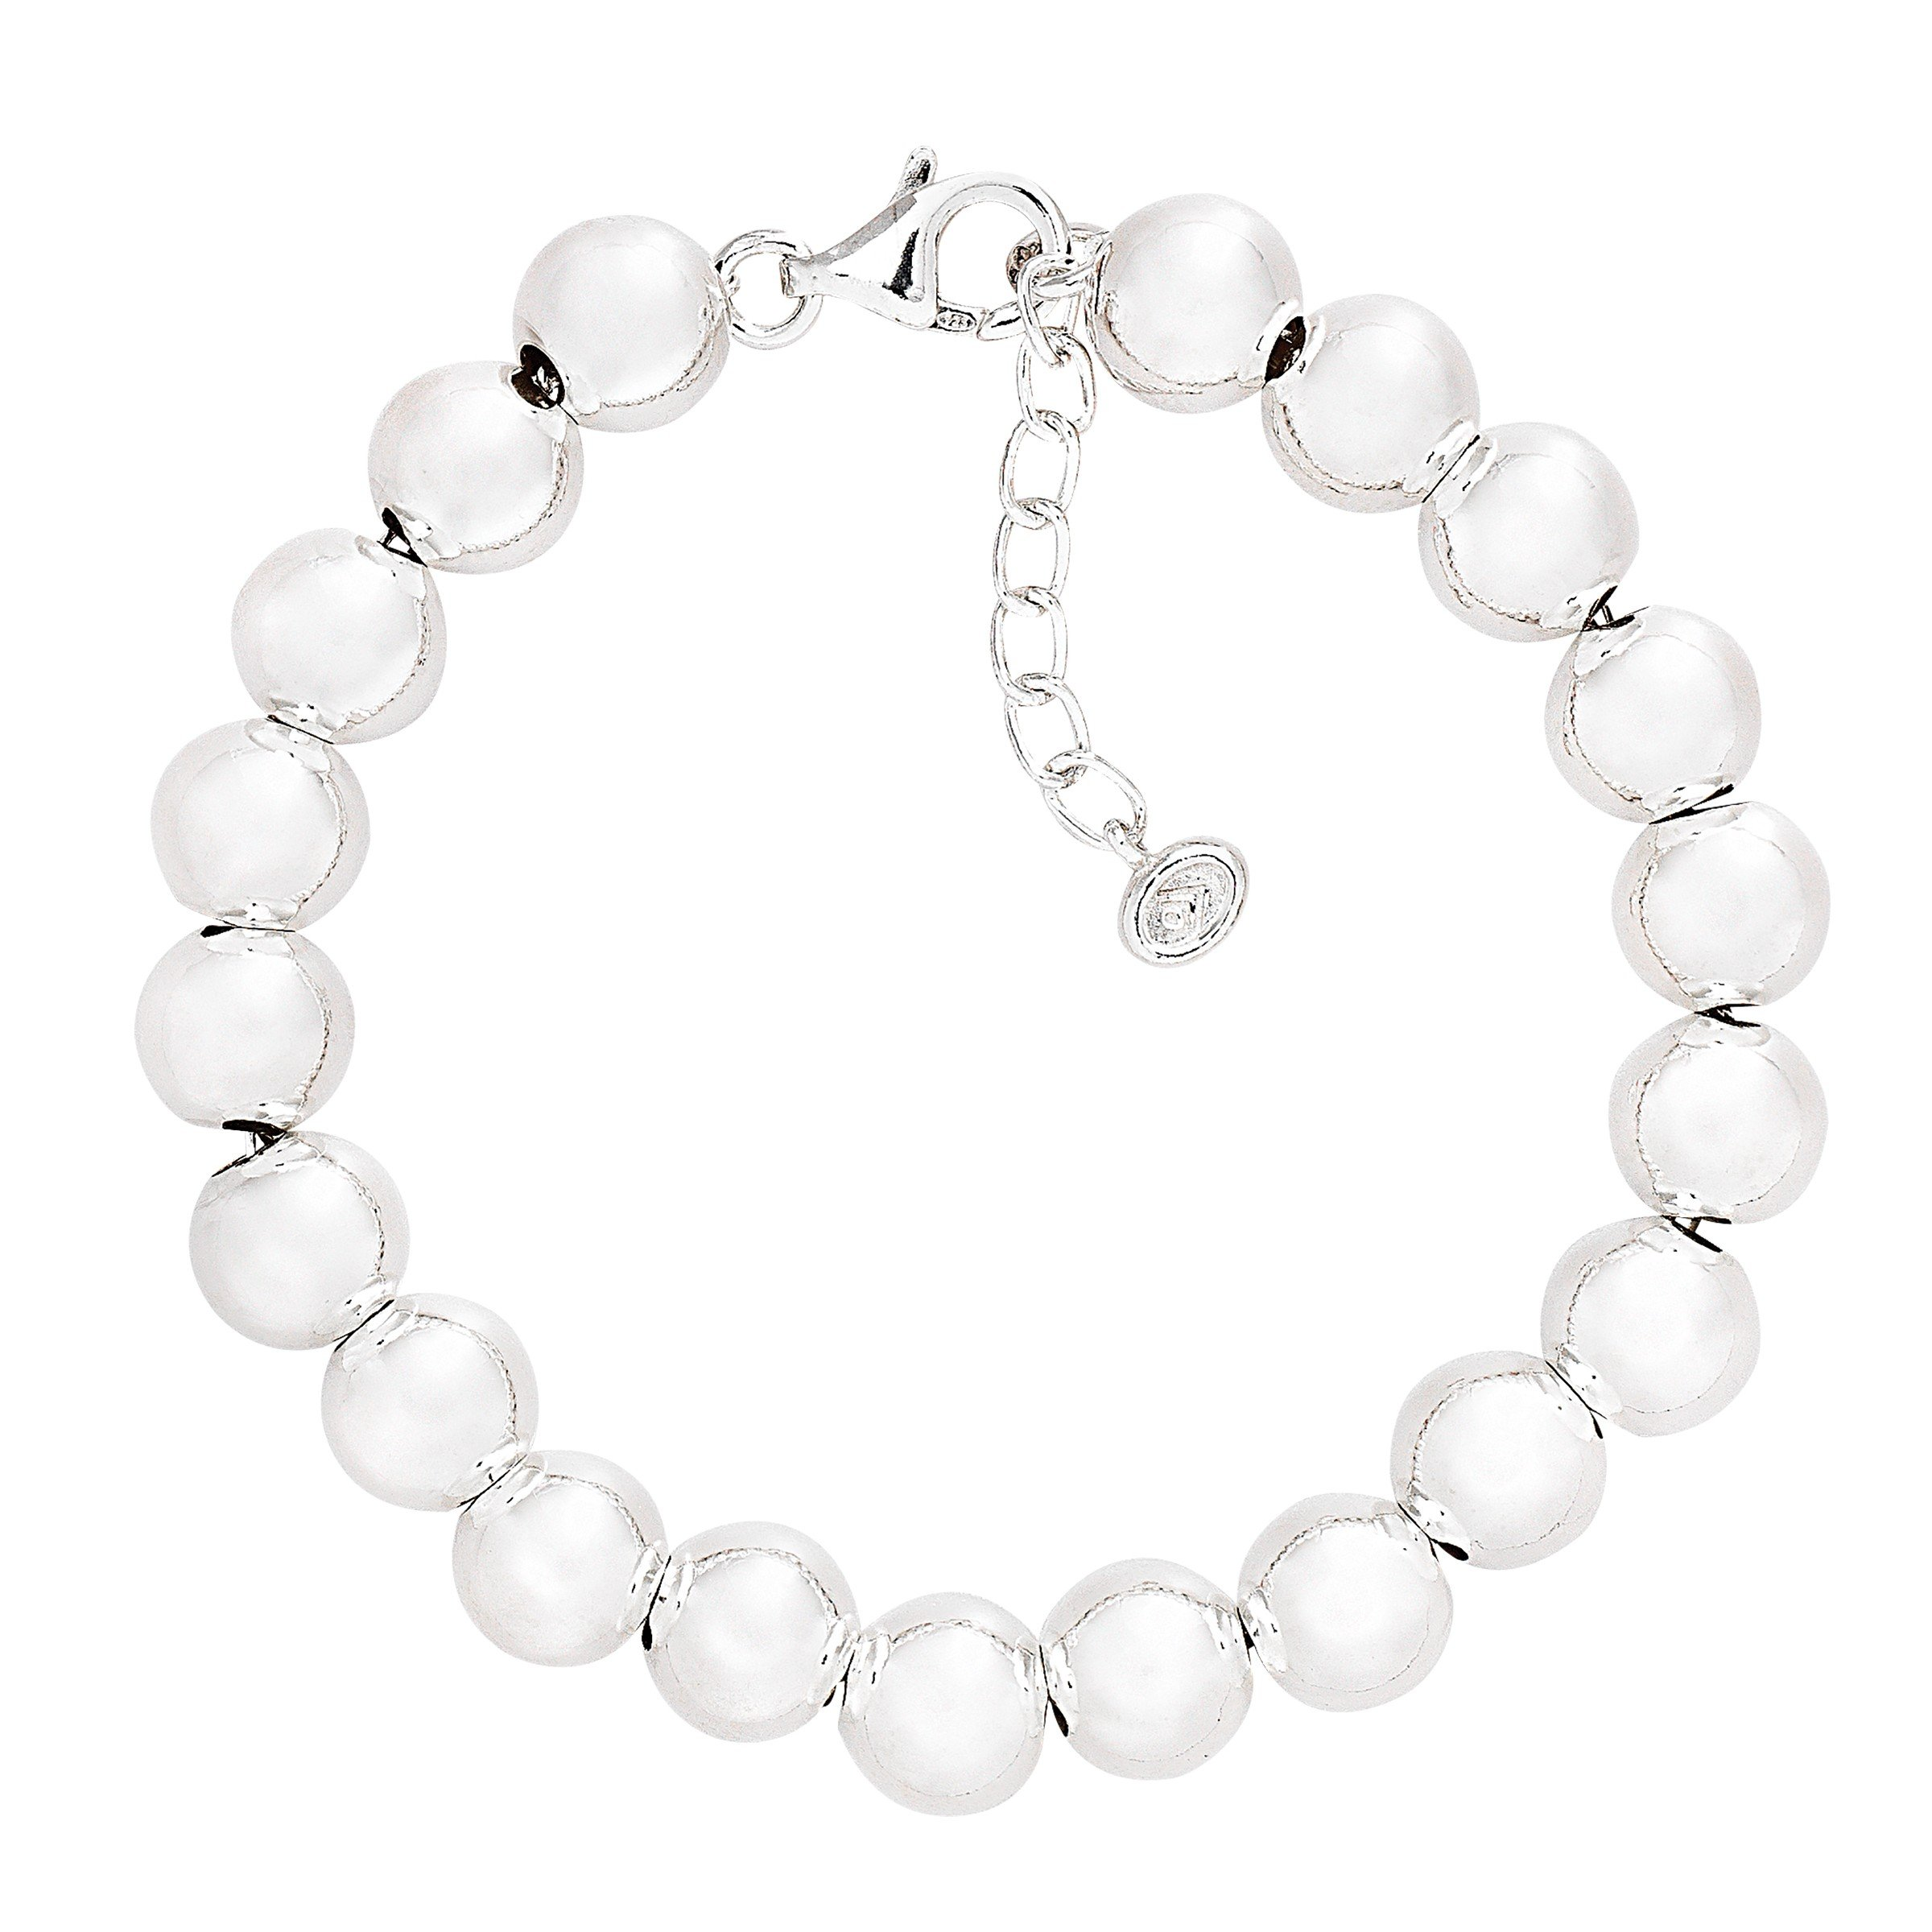 Silpada 'on the Ball' Sterling Silver Bead Bracelet, 7.5'' +1'' Extender